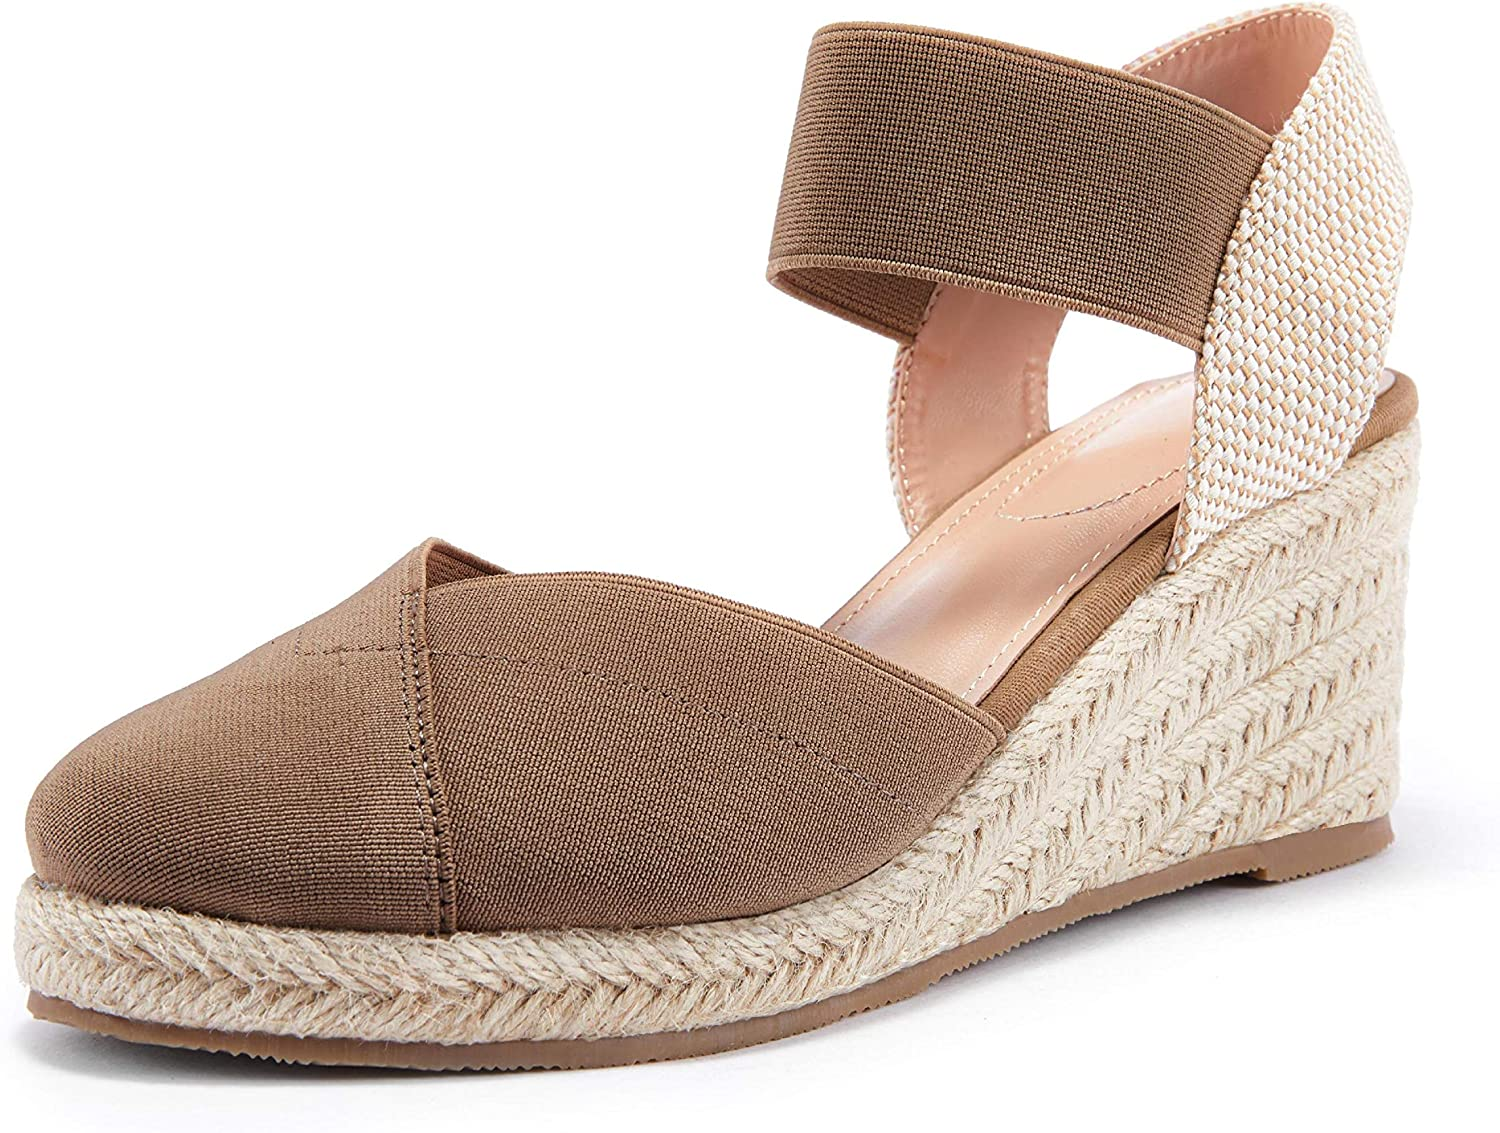 Coutgo Womens Wedge Sales for sale Espadrille New product! New type Sandals Toe Closed Platform Elast